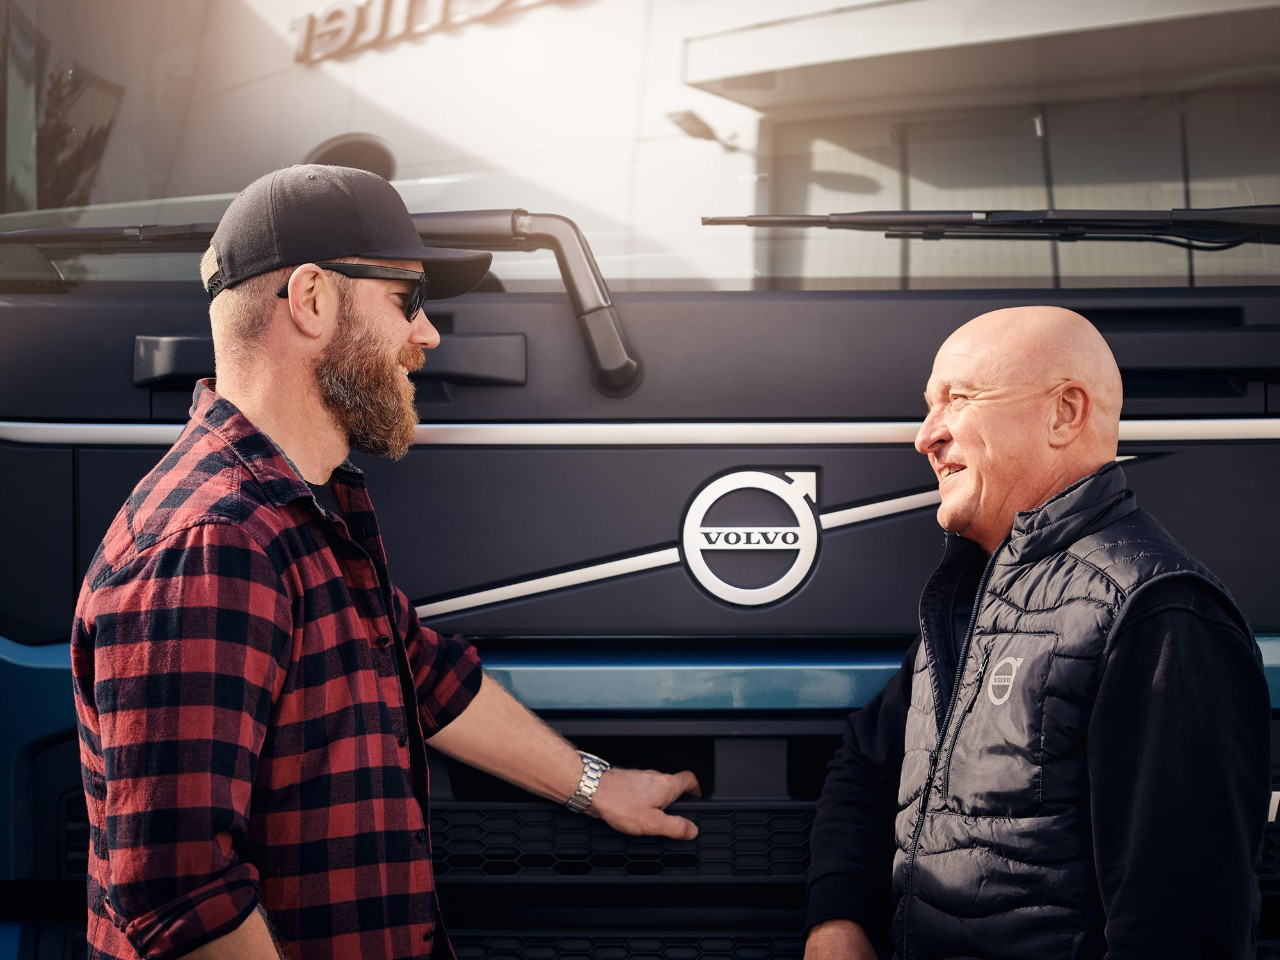 Two men speak in front of a Volvo truck